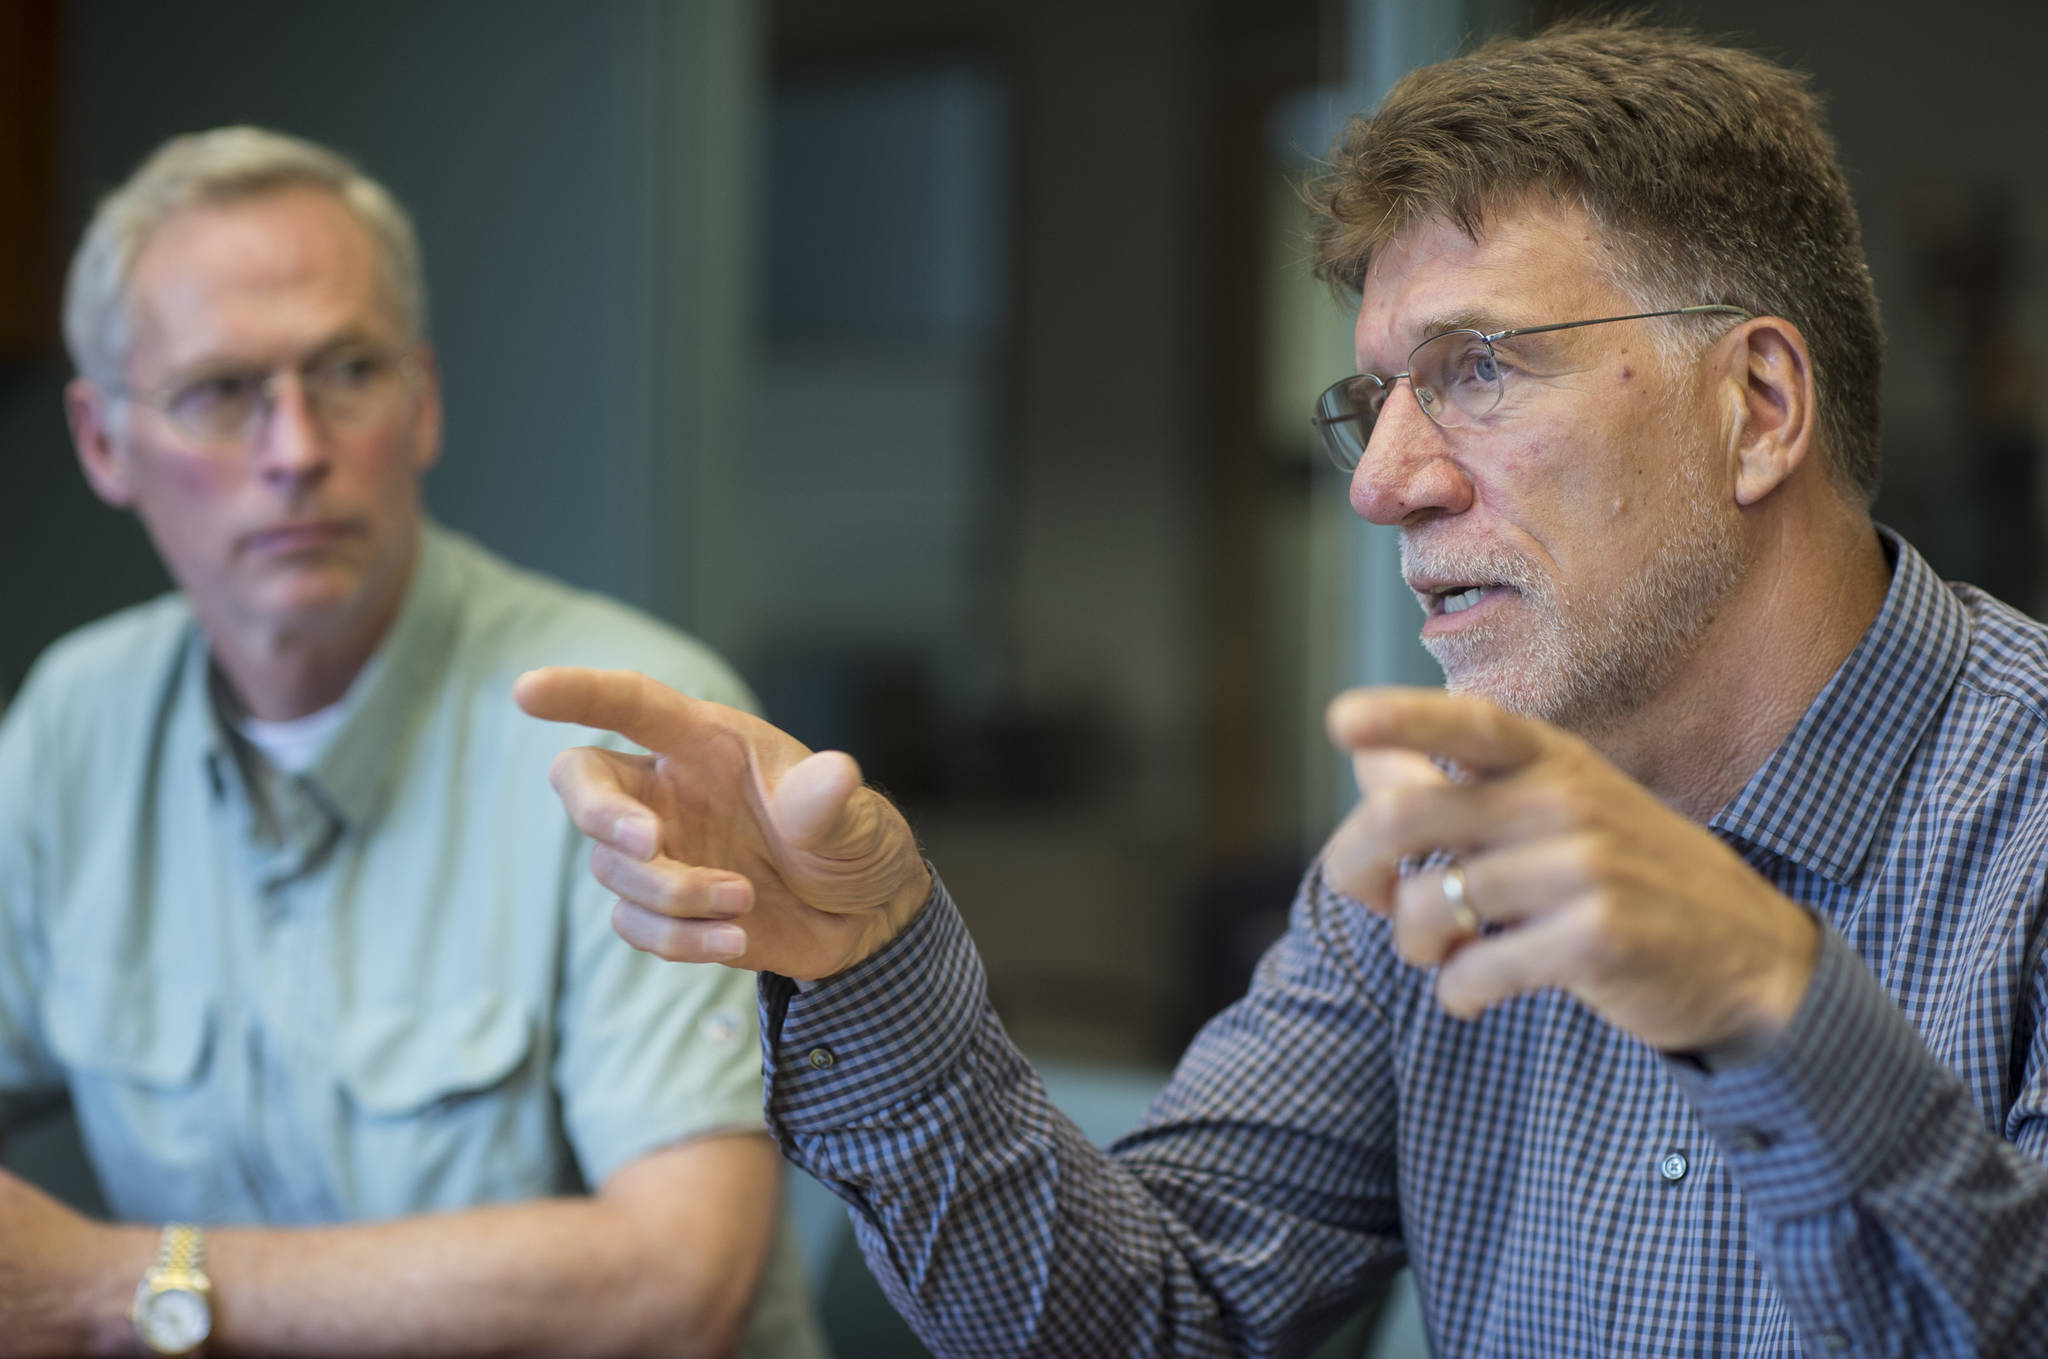 University of Alaska President Jim Johnsen, left, listens to Dr. Steve Atwater, Executive Dean of the university's new Alaska College of Education, during an interview at the University of Alaska Southeast on Friday, August 3, 2018. (Michael Penn | Juneau Empire)